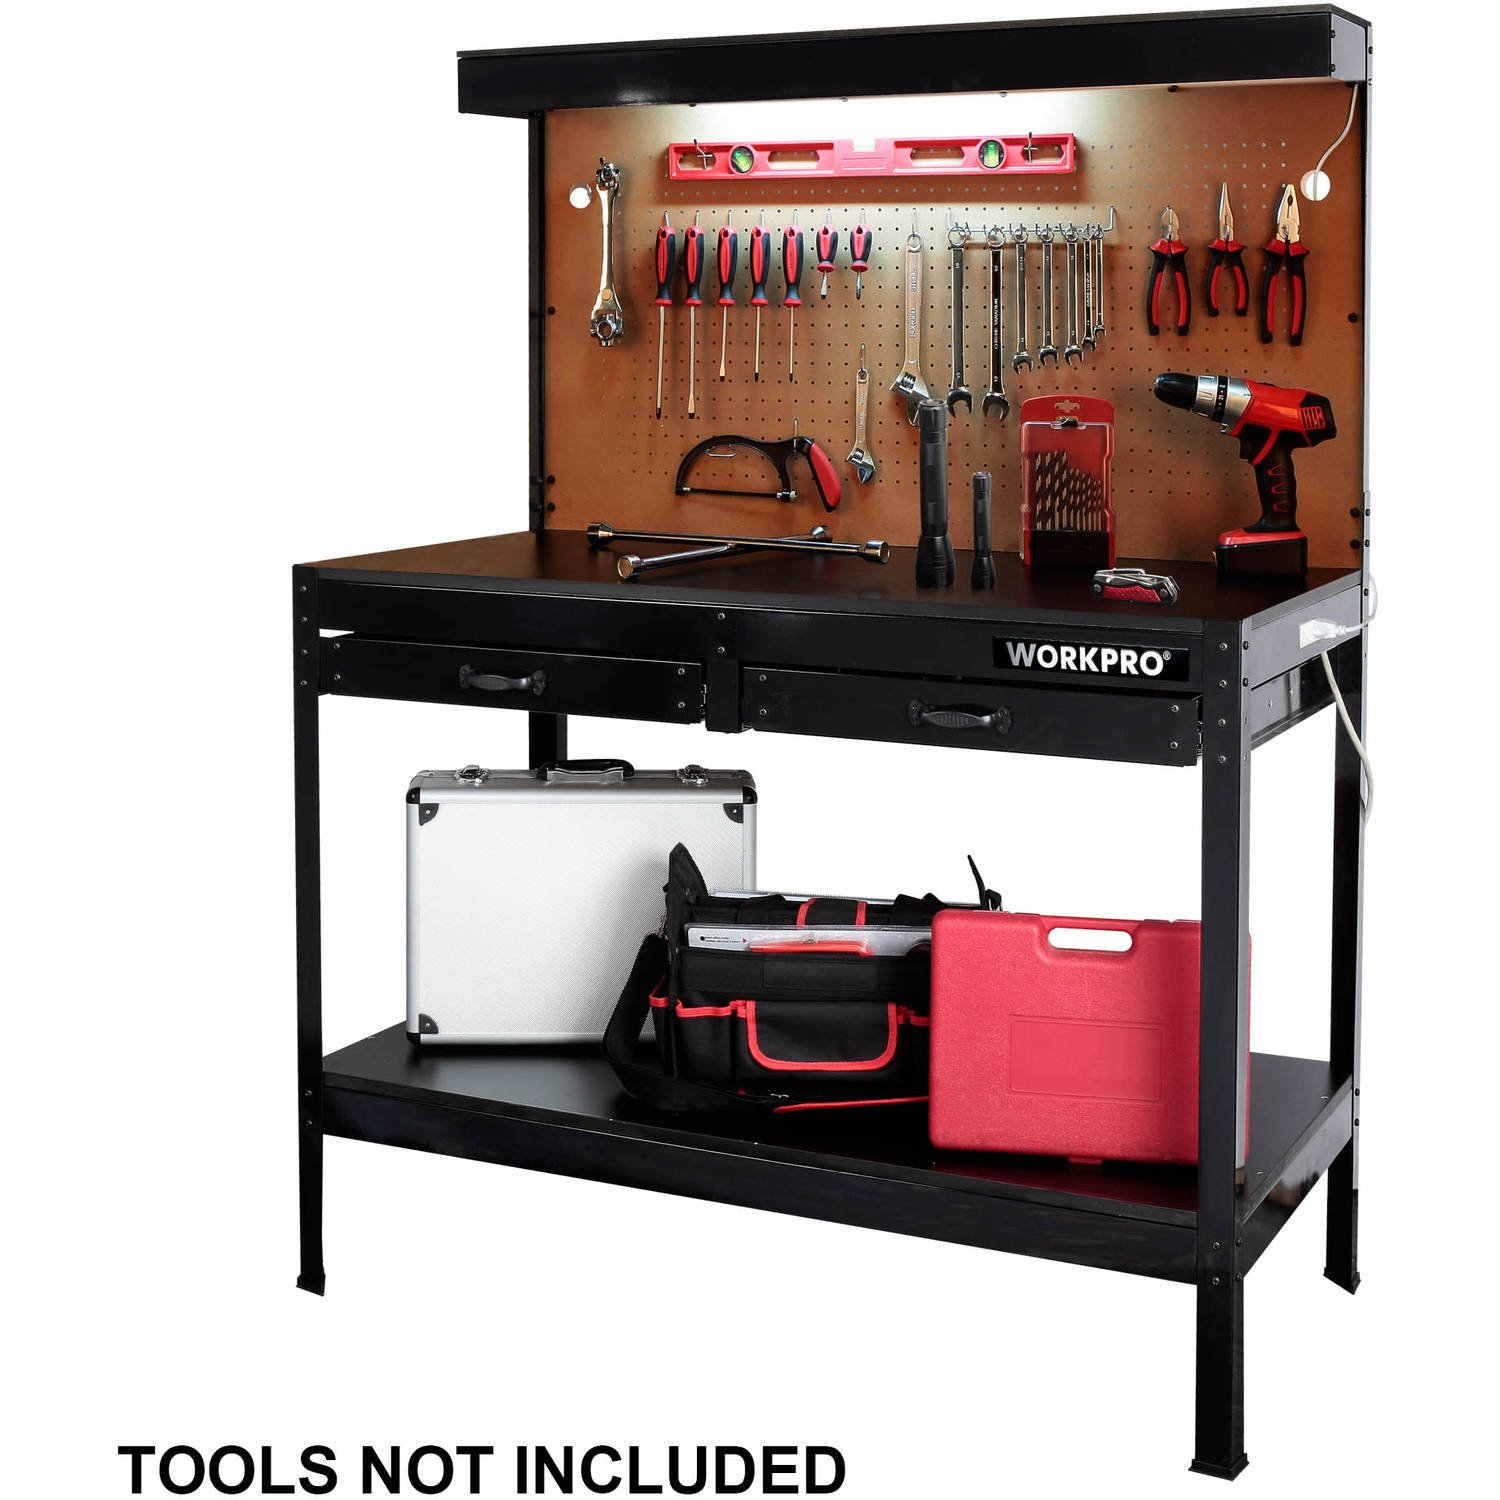 Multi purpose workbench with worklight by WORKPRO (Image #2)